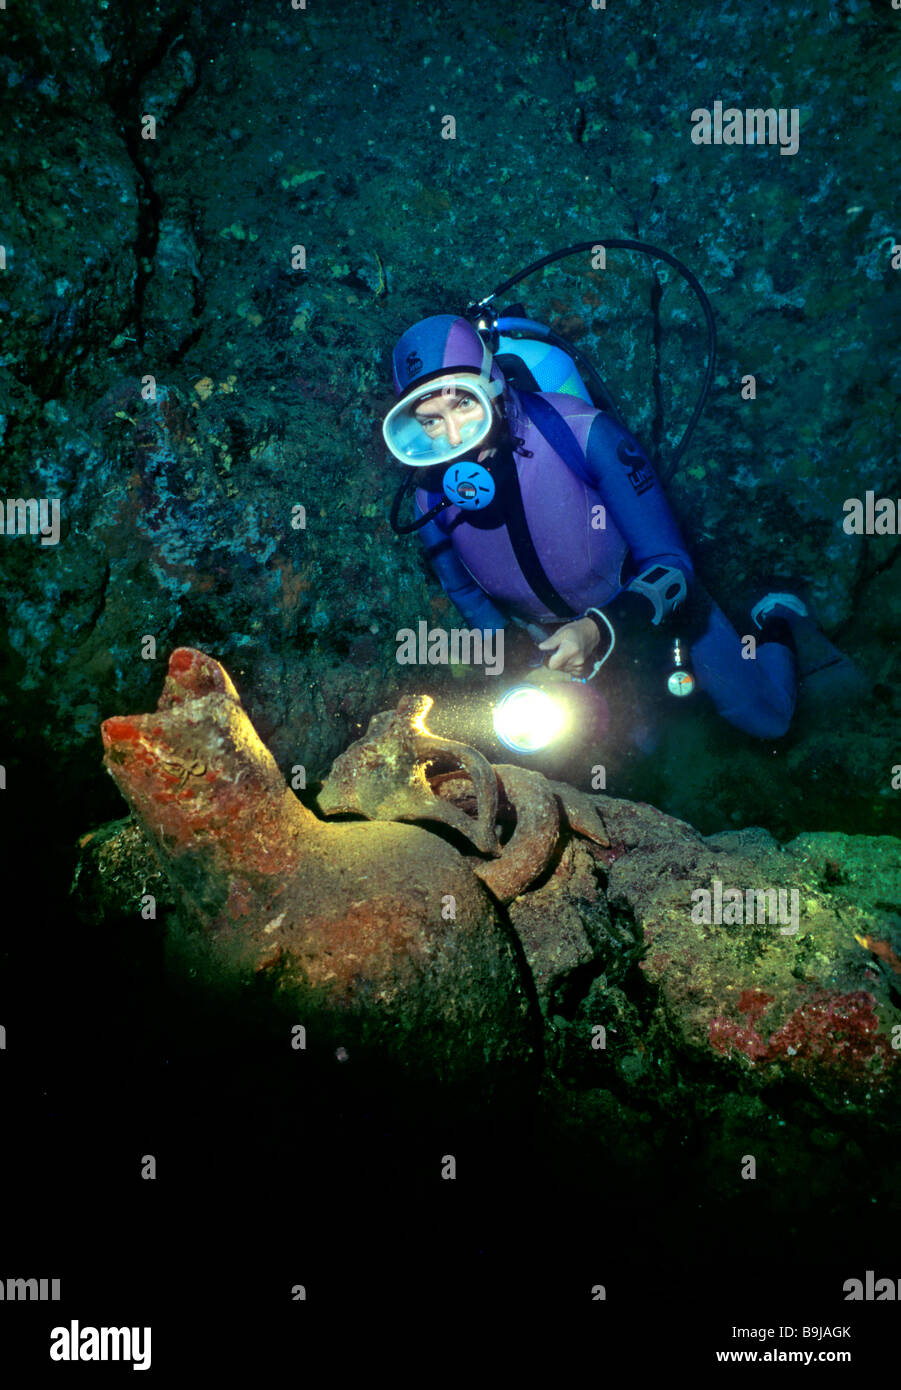 Scuba diver in an underwater cave with amphoras, Mediterranean Sea, Turkey - Stock Image